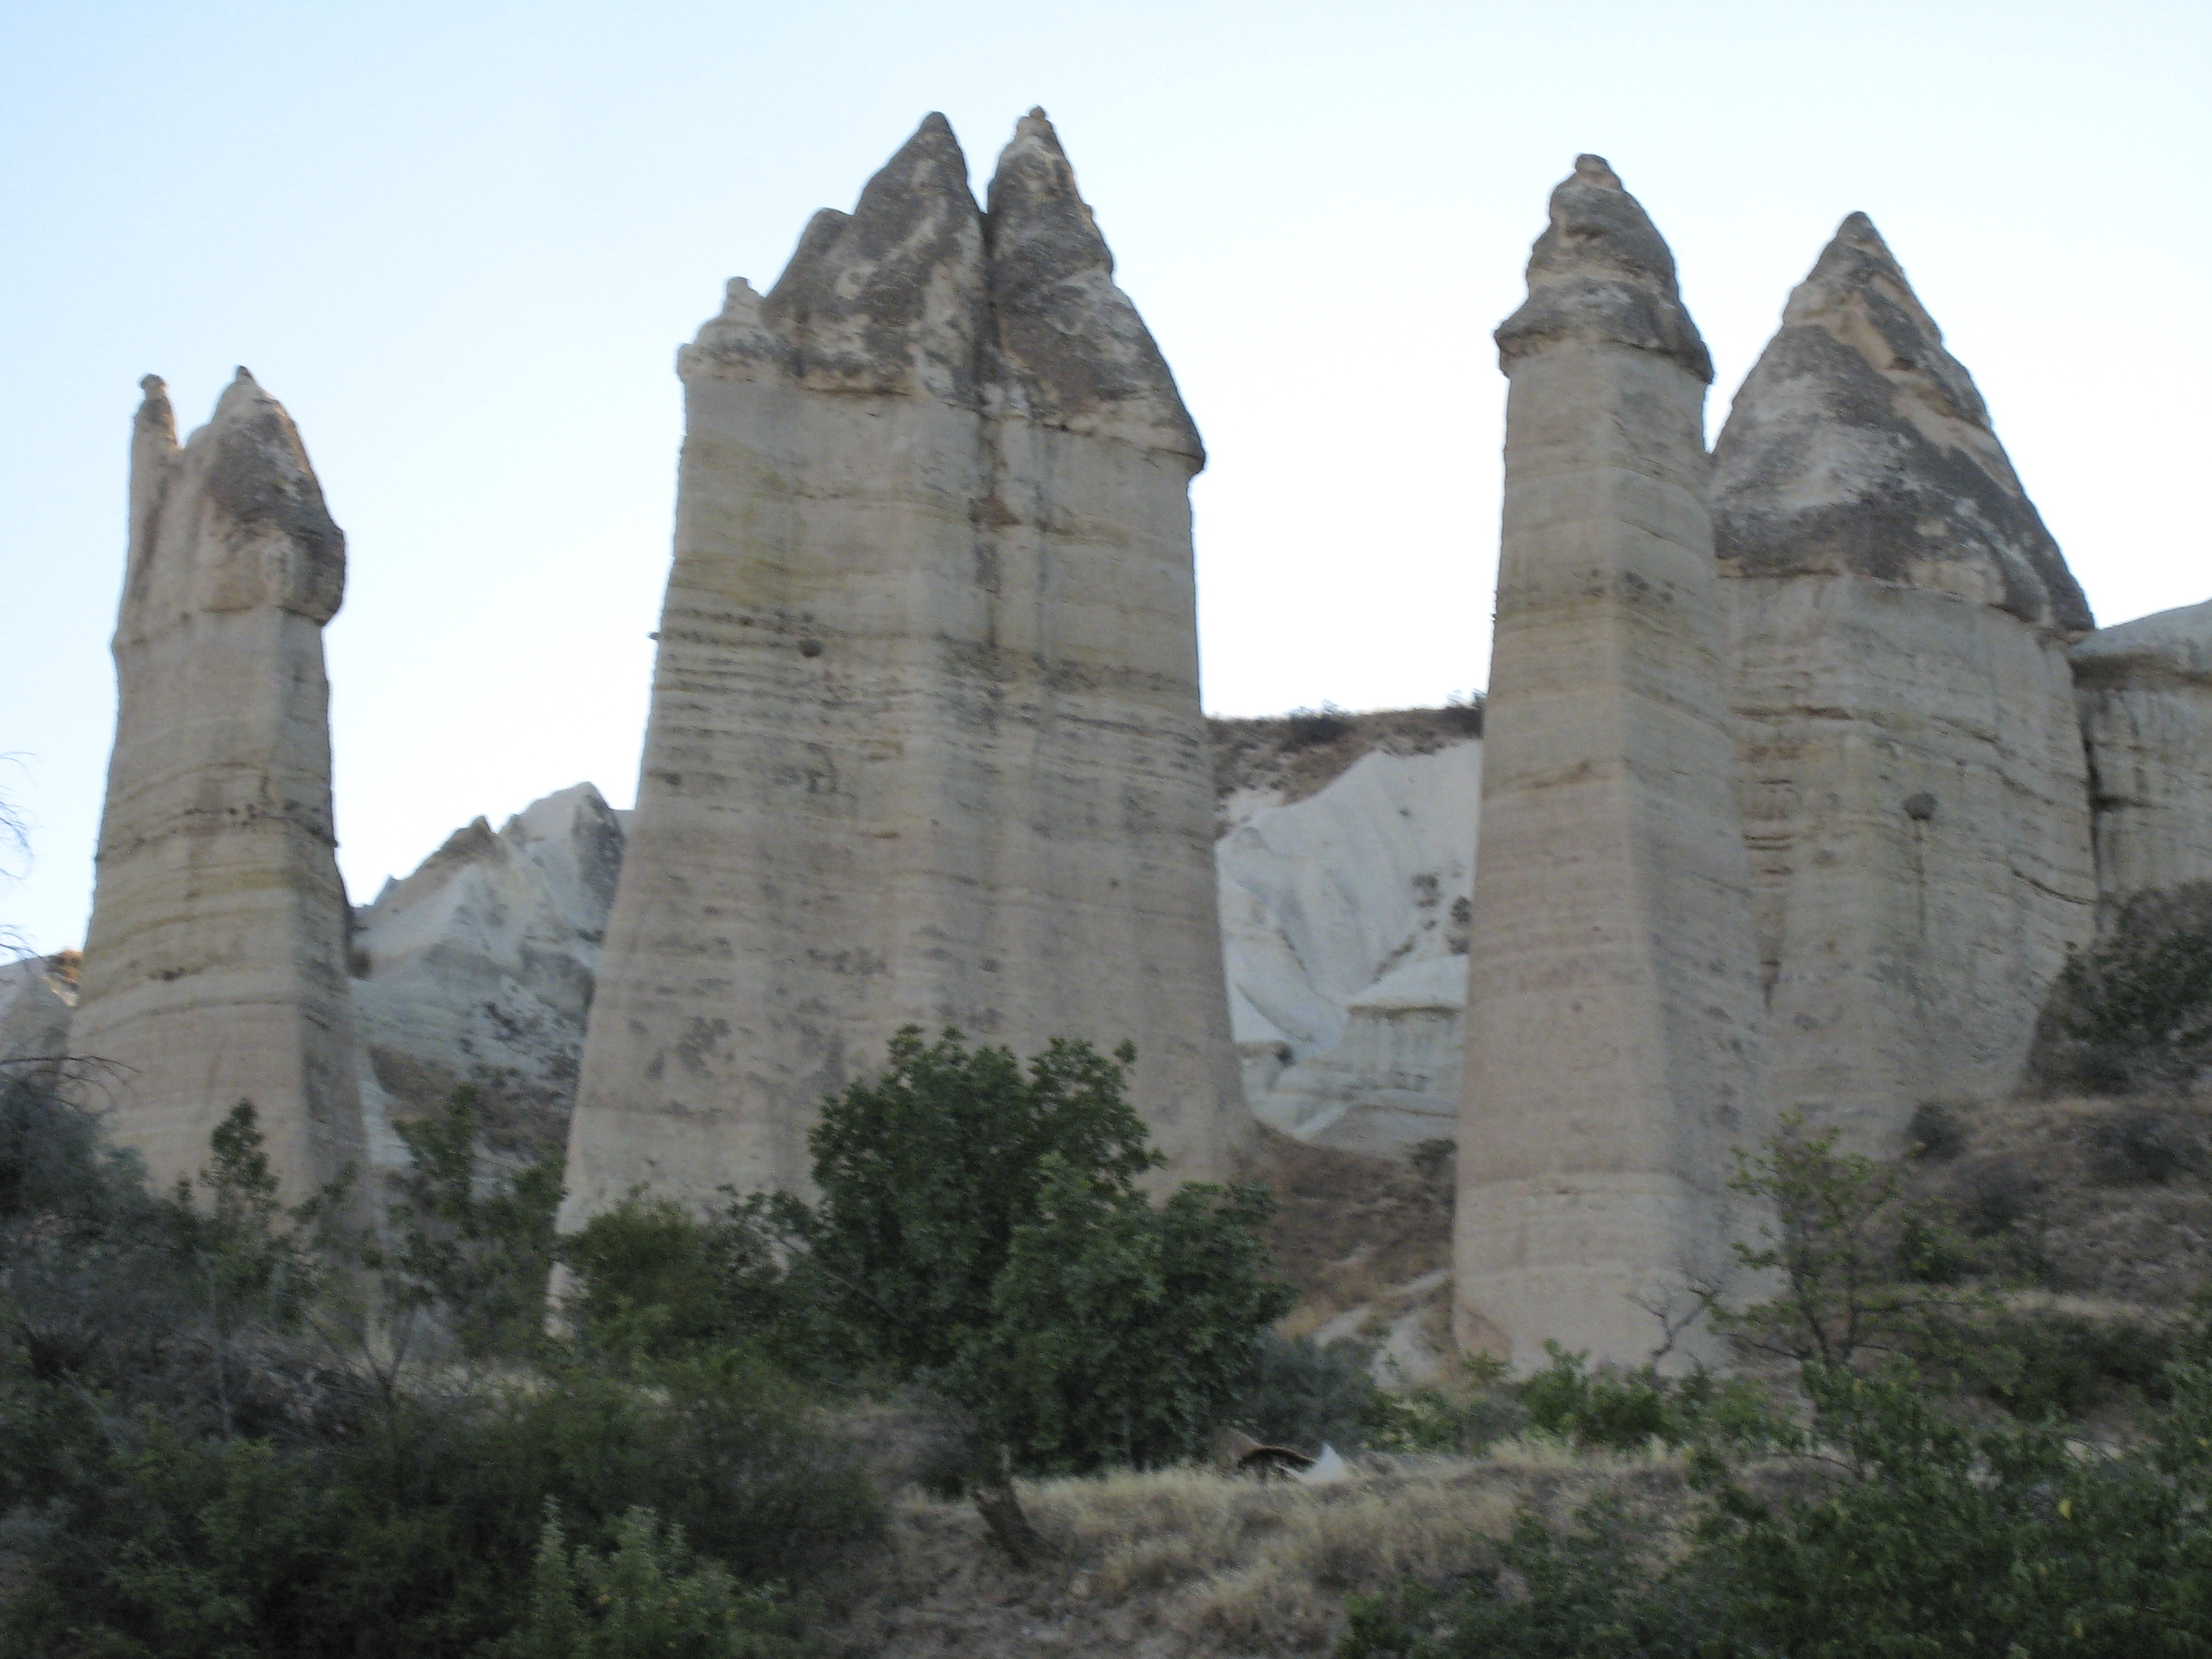 Fairy chimney rock formations, Goreme, Cappadocia Turkey 17.jpg - Goreme, Cappadocia, Turkey